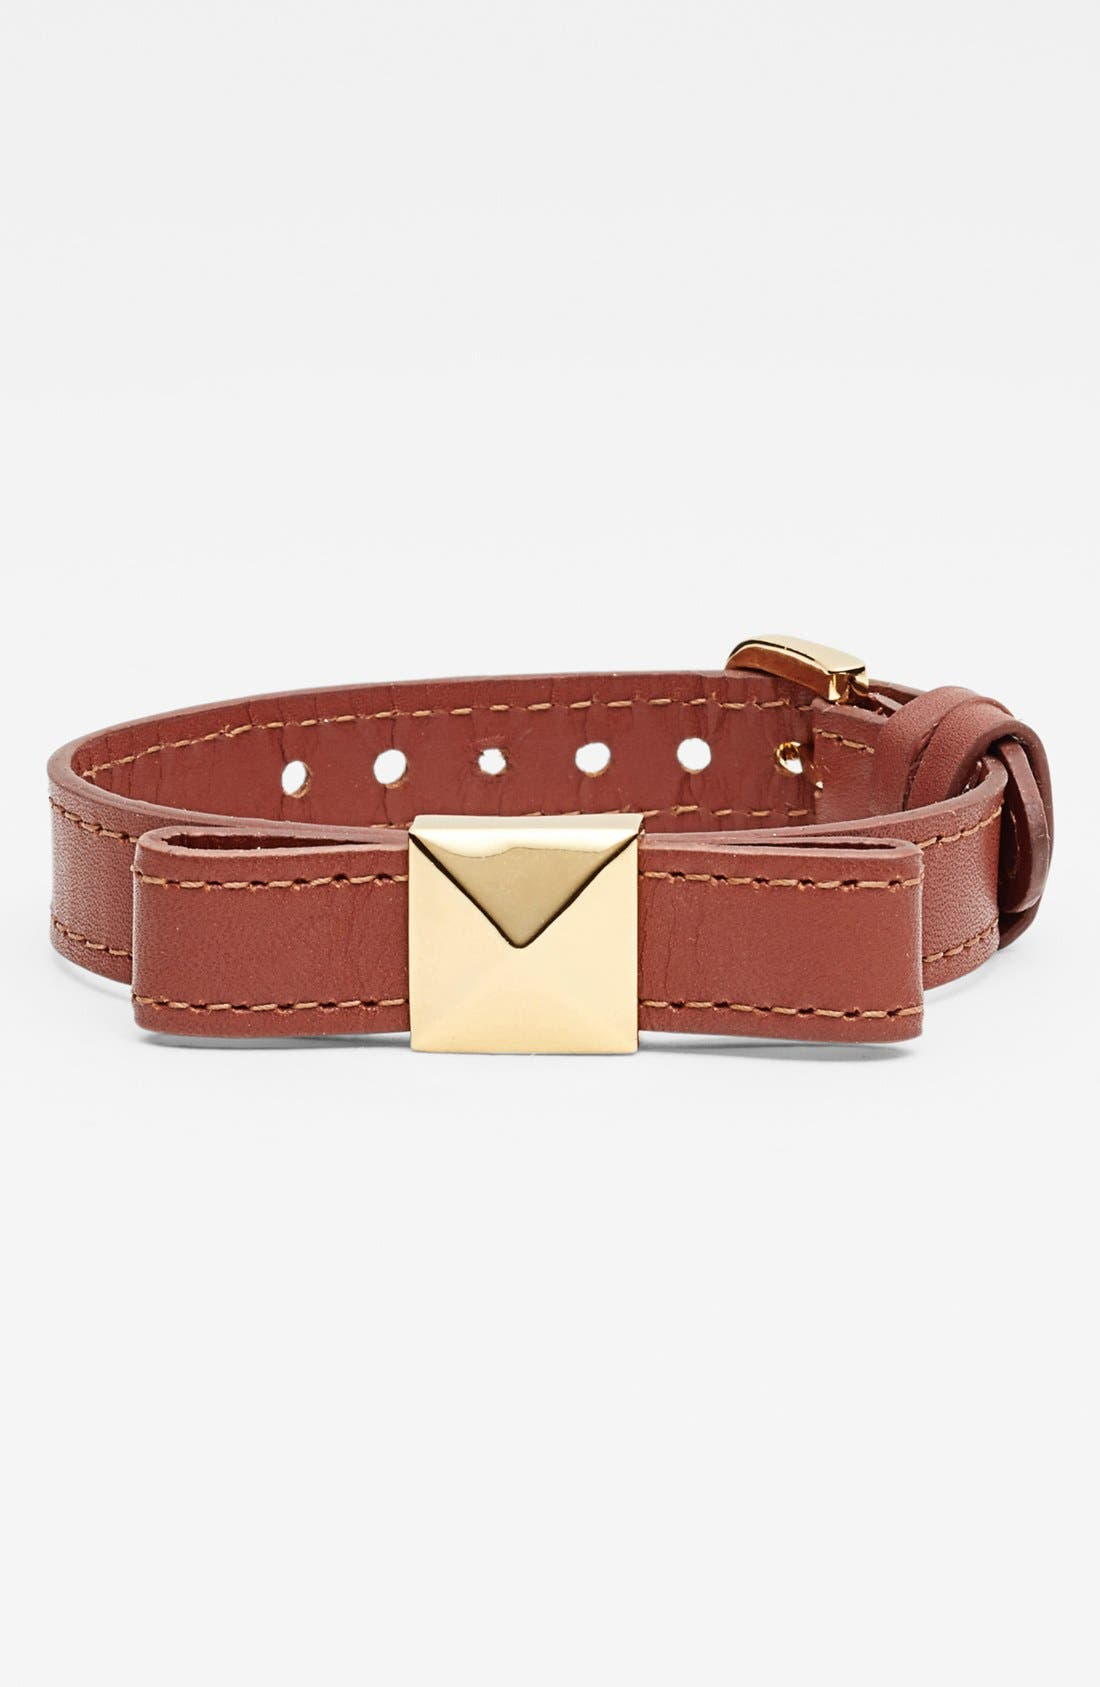 Alternate Image 1 Selected - kate spade new york 'locked in' leather bow bracelet